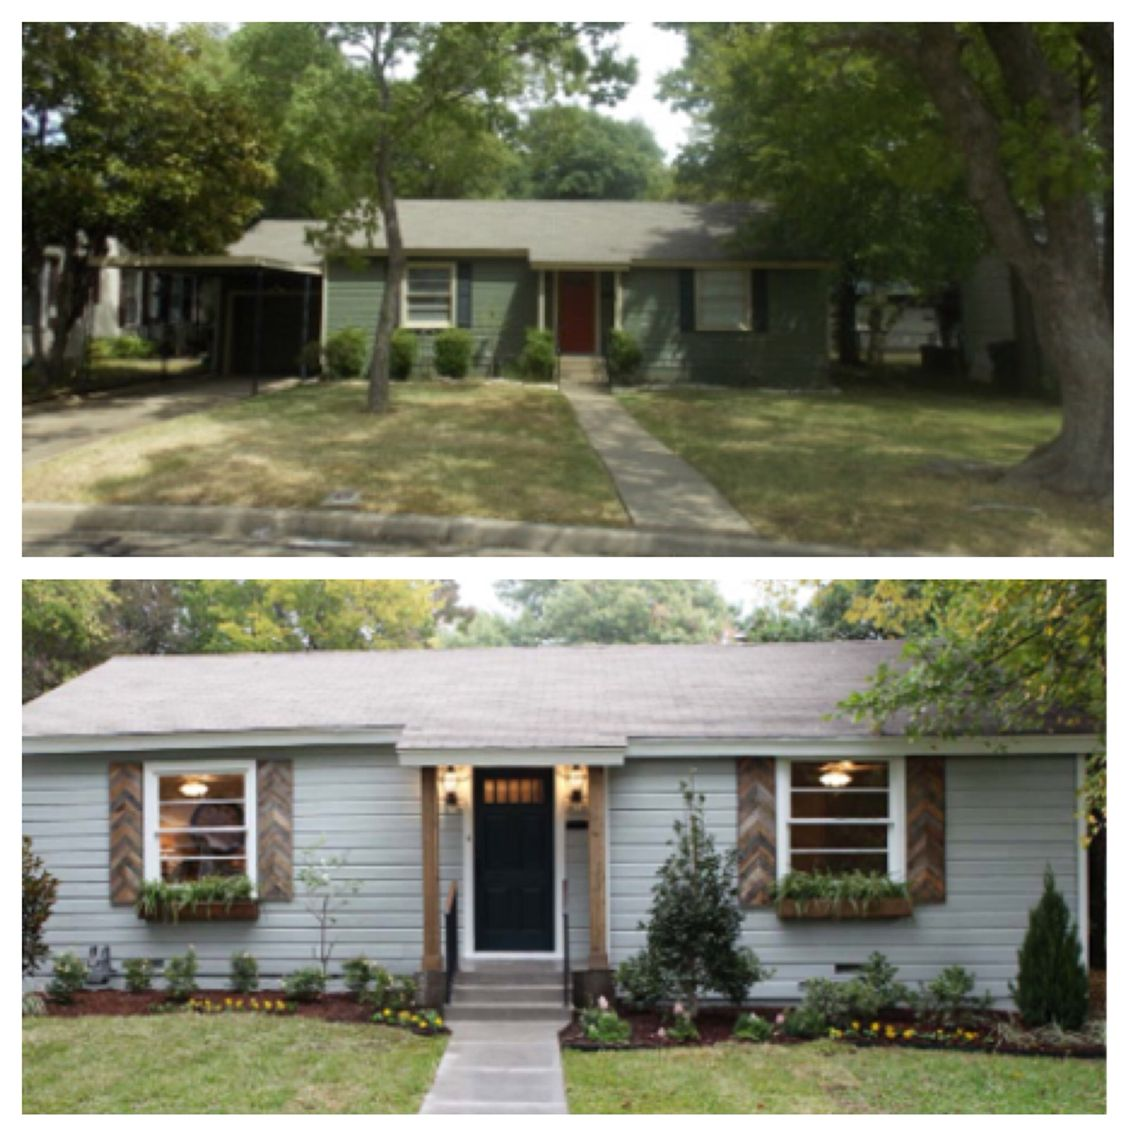 Hgtv Small Front Yard Landscaping Ideas: Before & After Fixer Upper In 2019